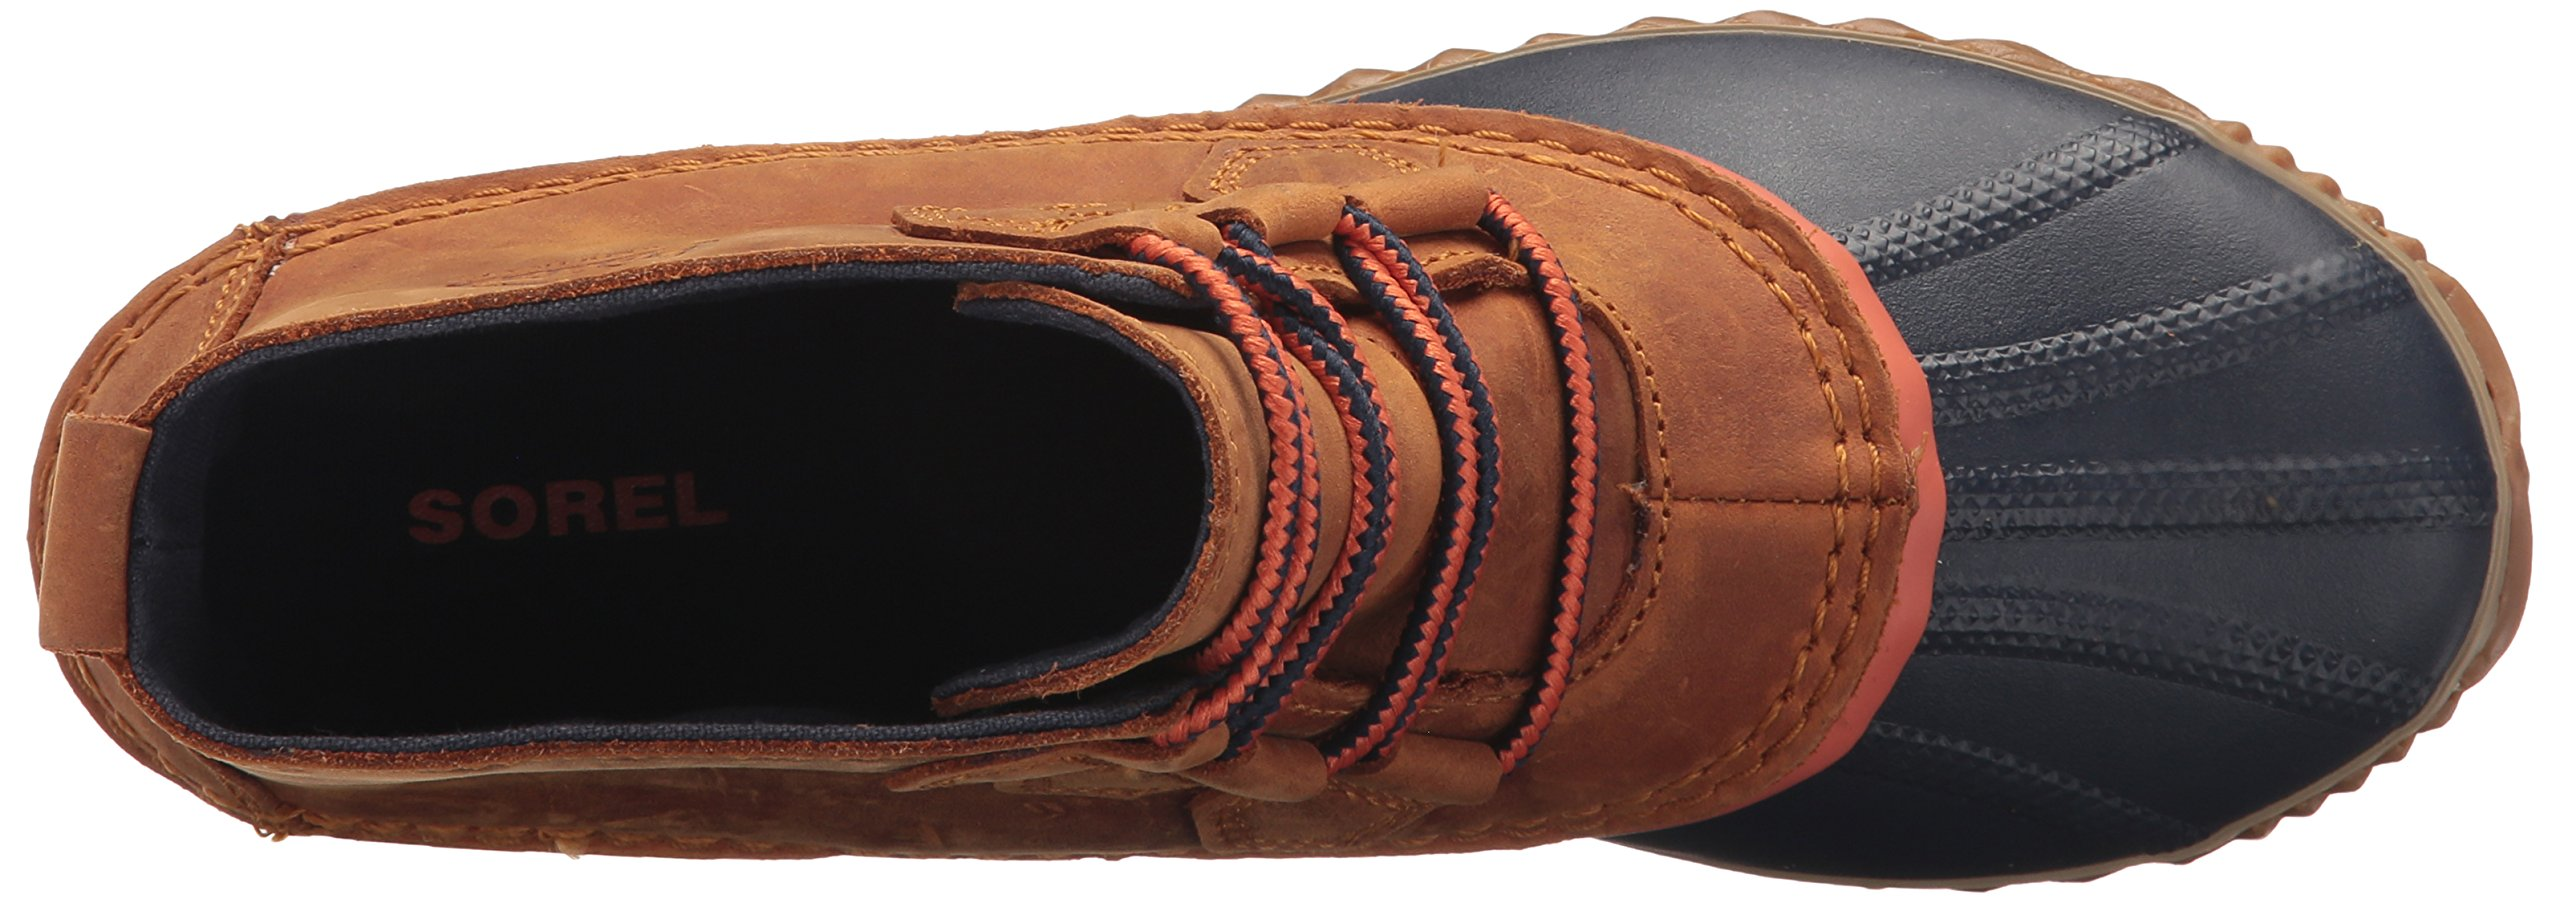 Sorel Women's Out N About Snow Boot, Brown, 6 B US by SOREL (Image #8)